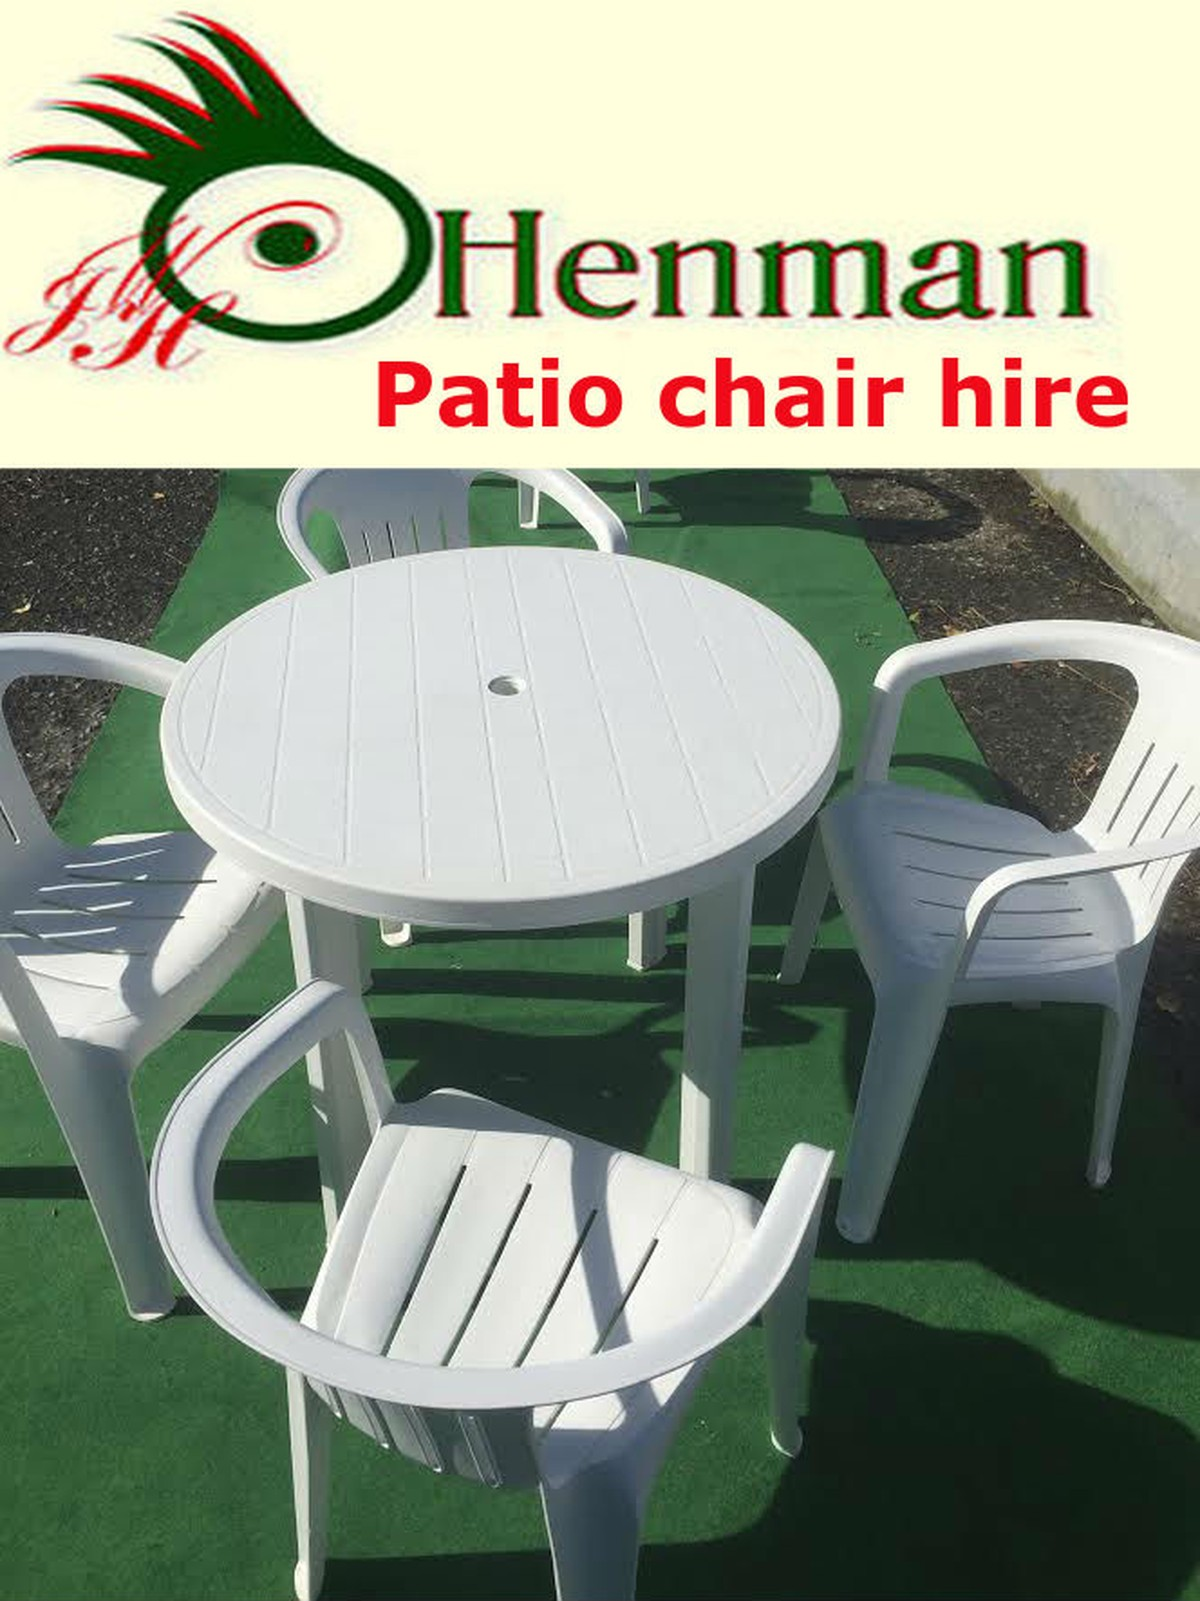 Patio chairs and tables hire